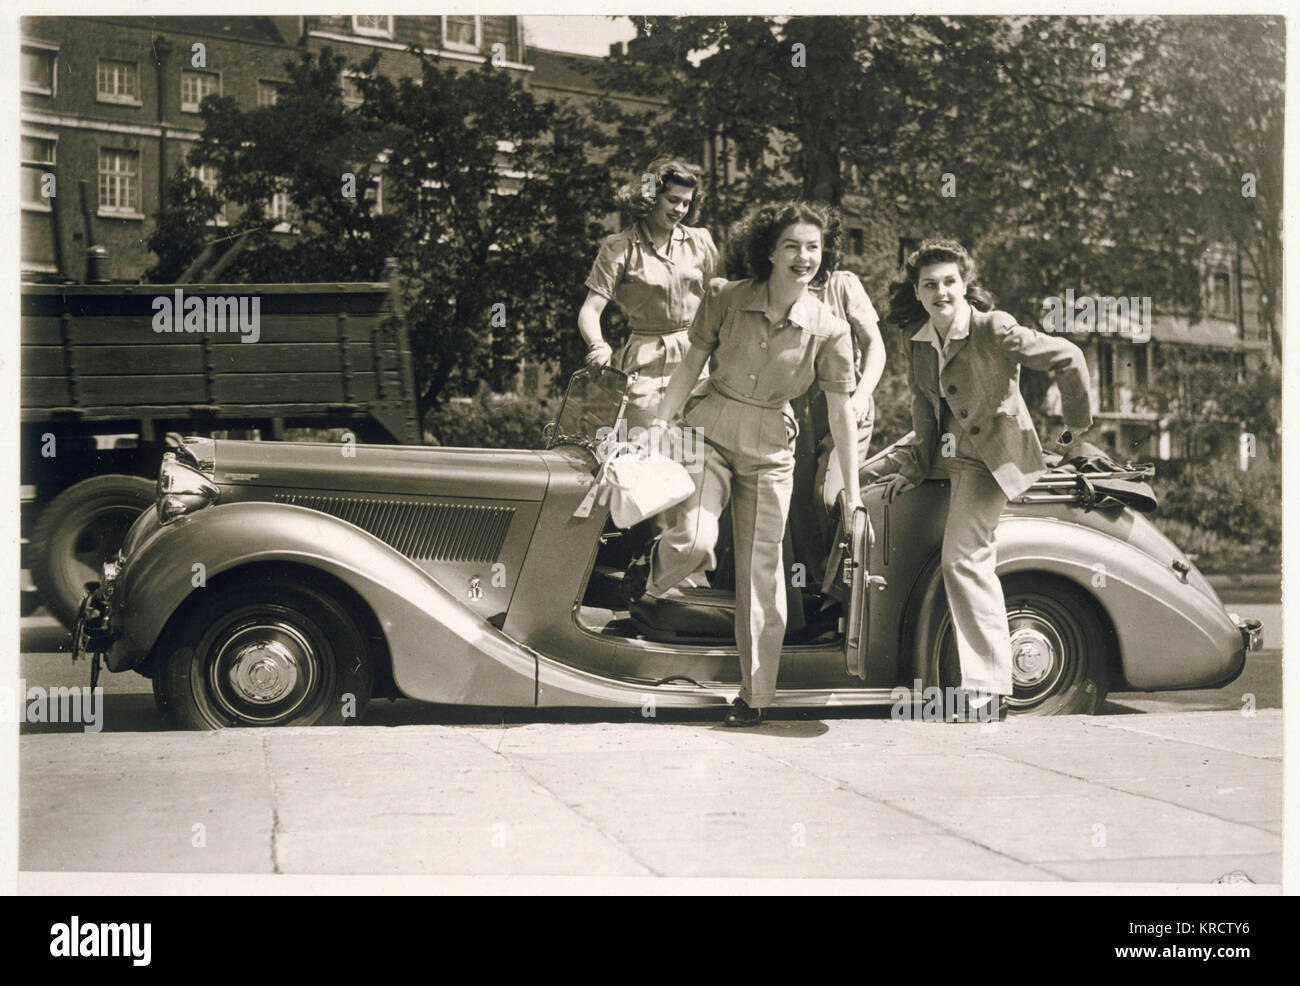 Four glamorous war-time women wearing trouser suits leap from an open top car Date: early 1940s - Stock Image